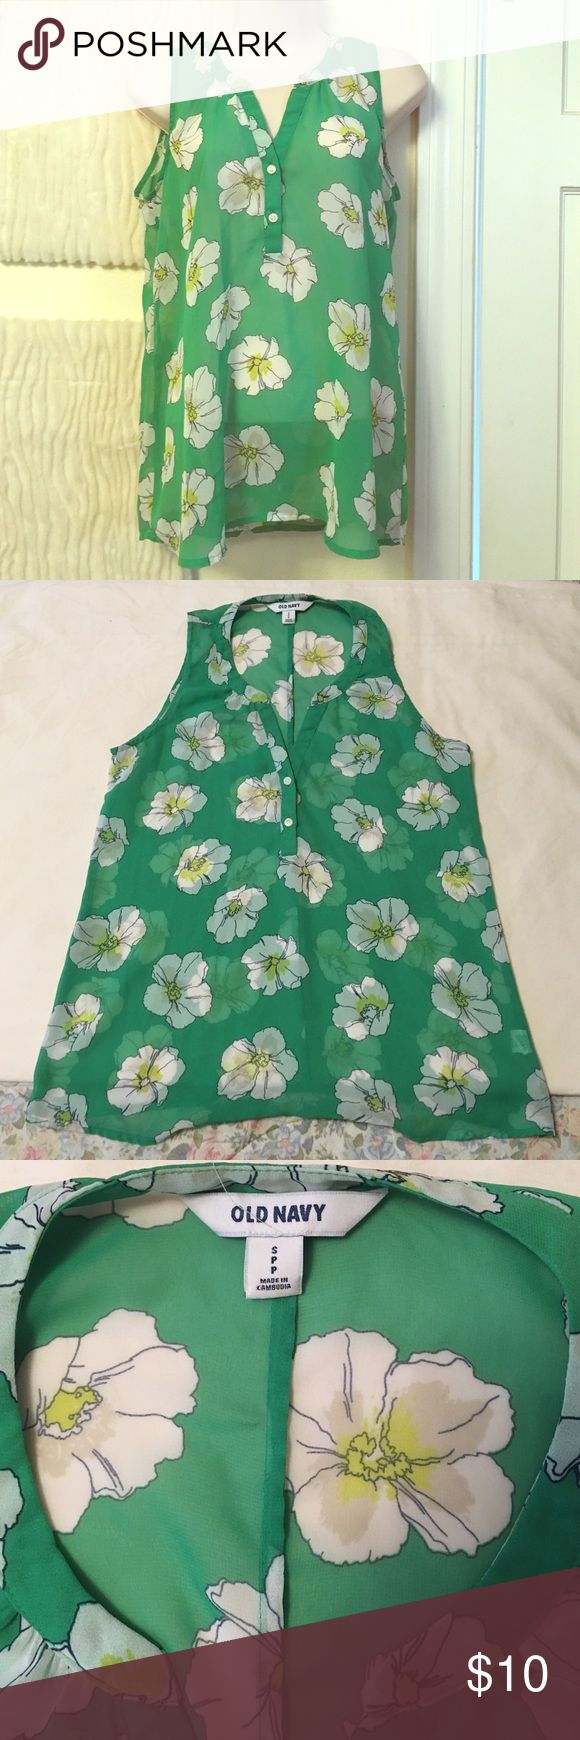 Green Blossom Print Sheer Tank Old Navy tank top in a lovely and bright green with blossoms.  Worn maybe once or twice. Old Navy Tops Tank Tops